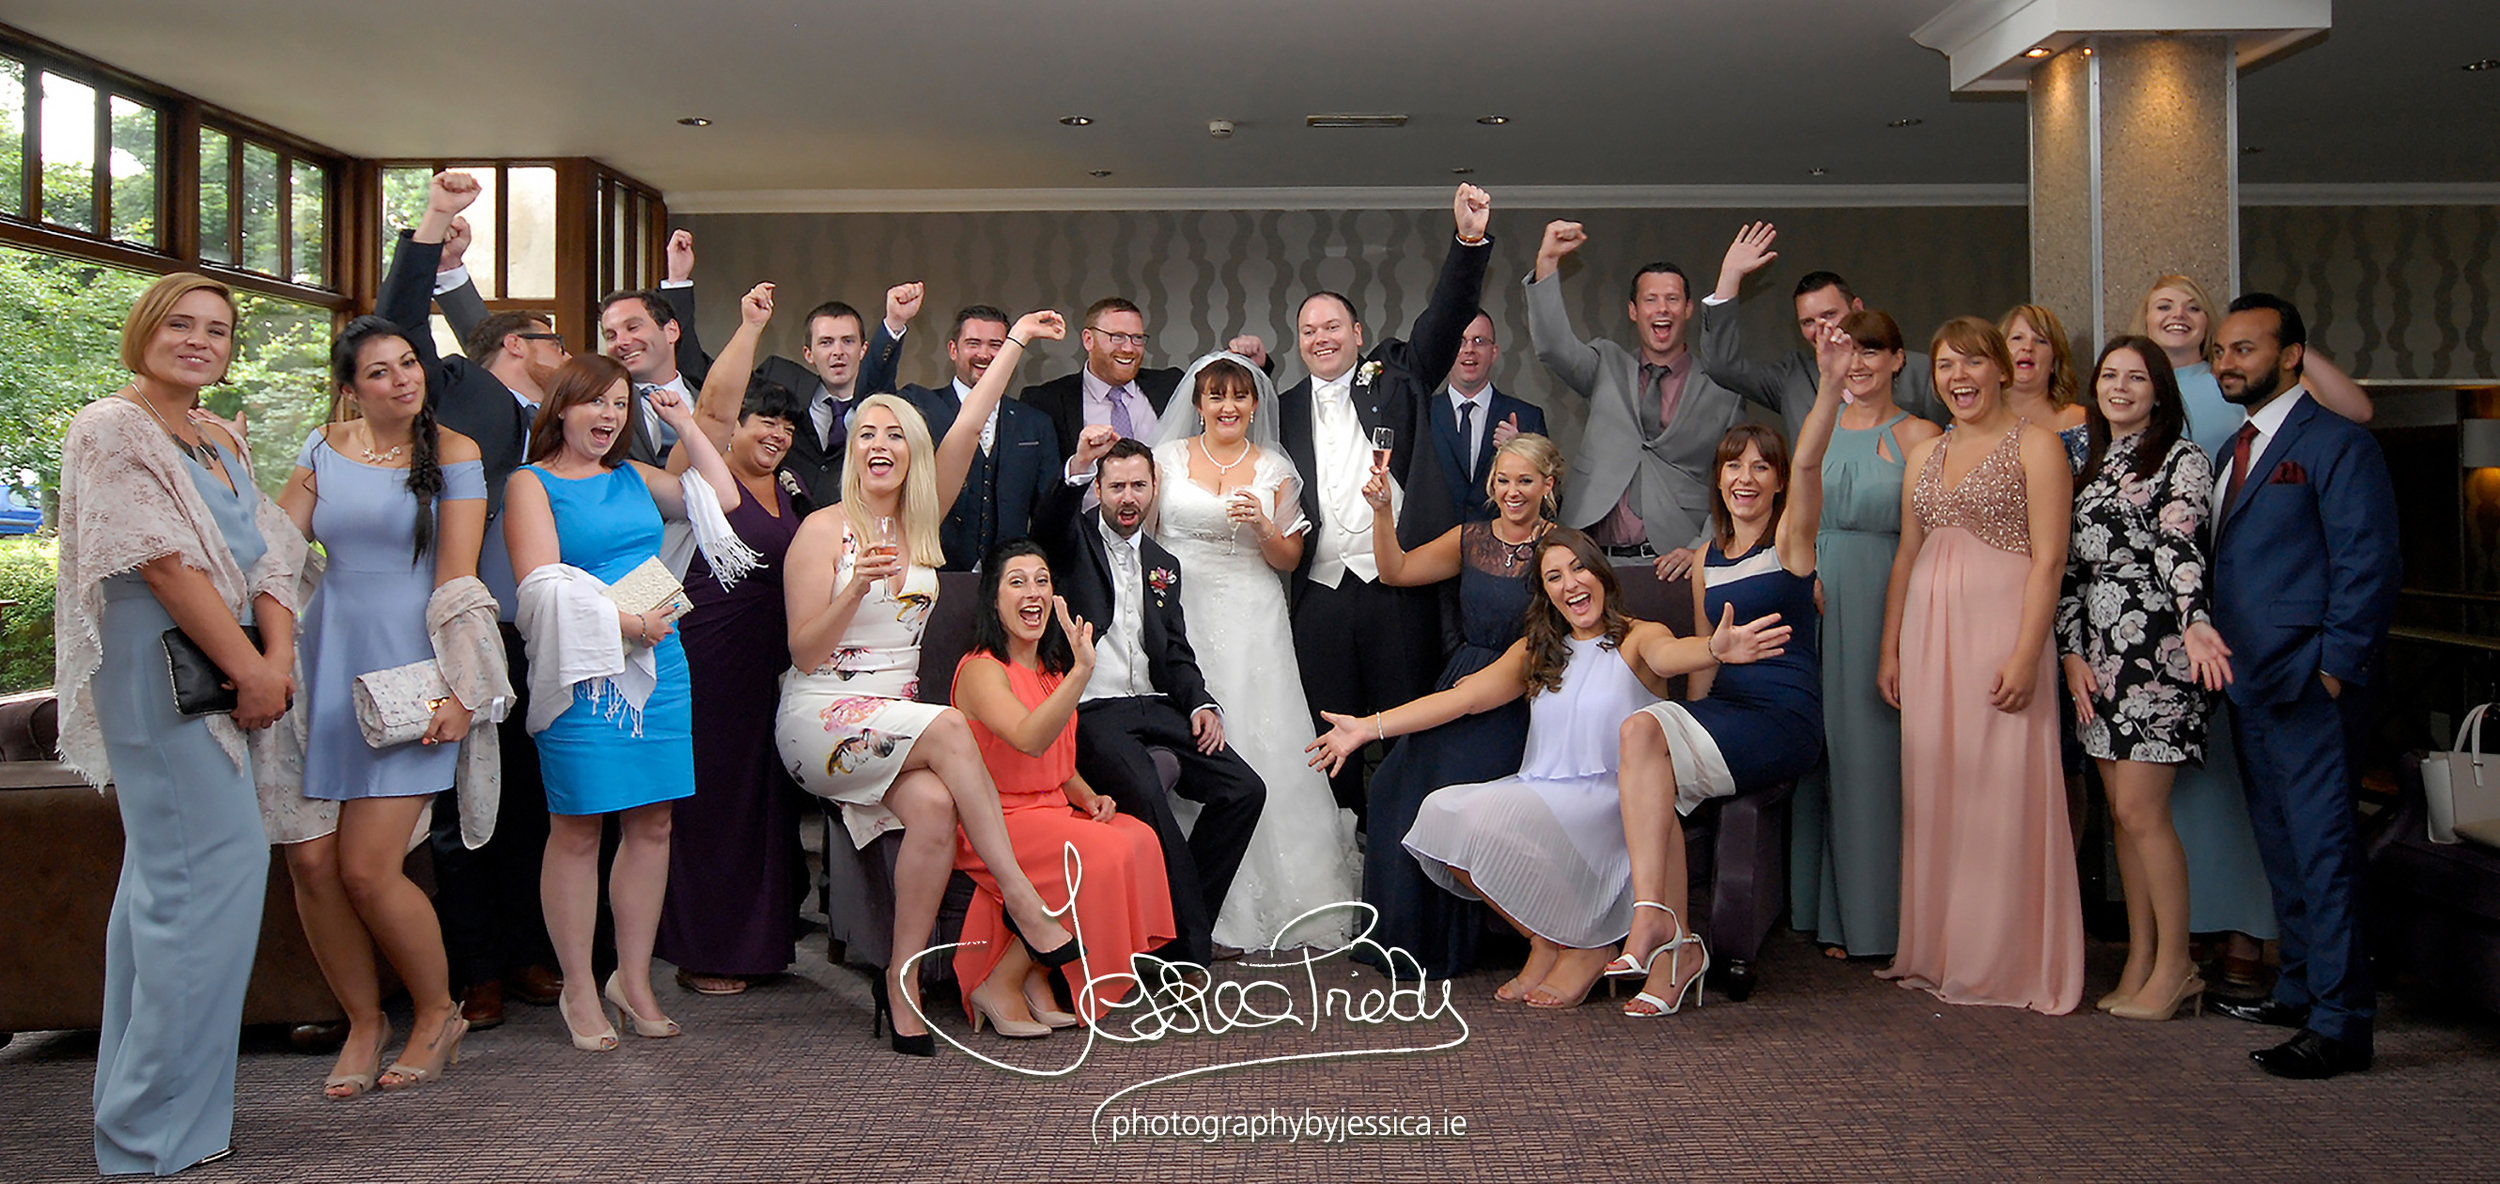 Wedding guests celebrating with the Bride and Groom